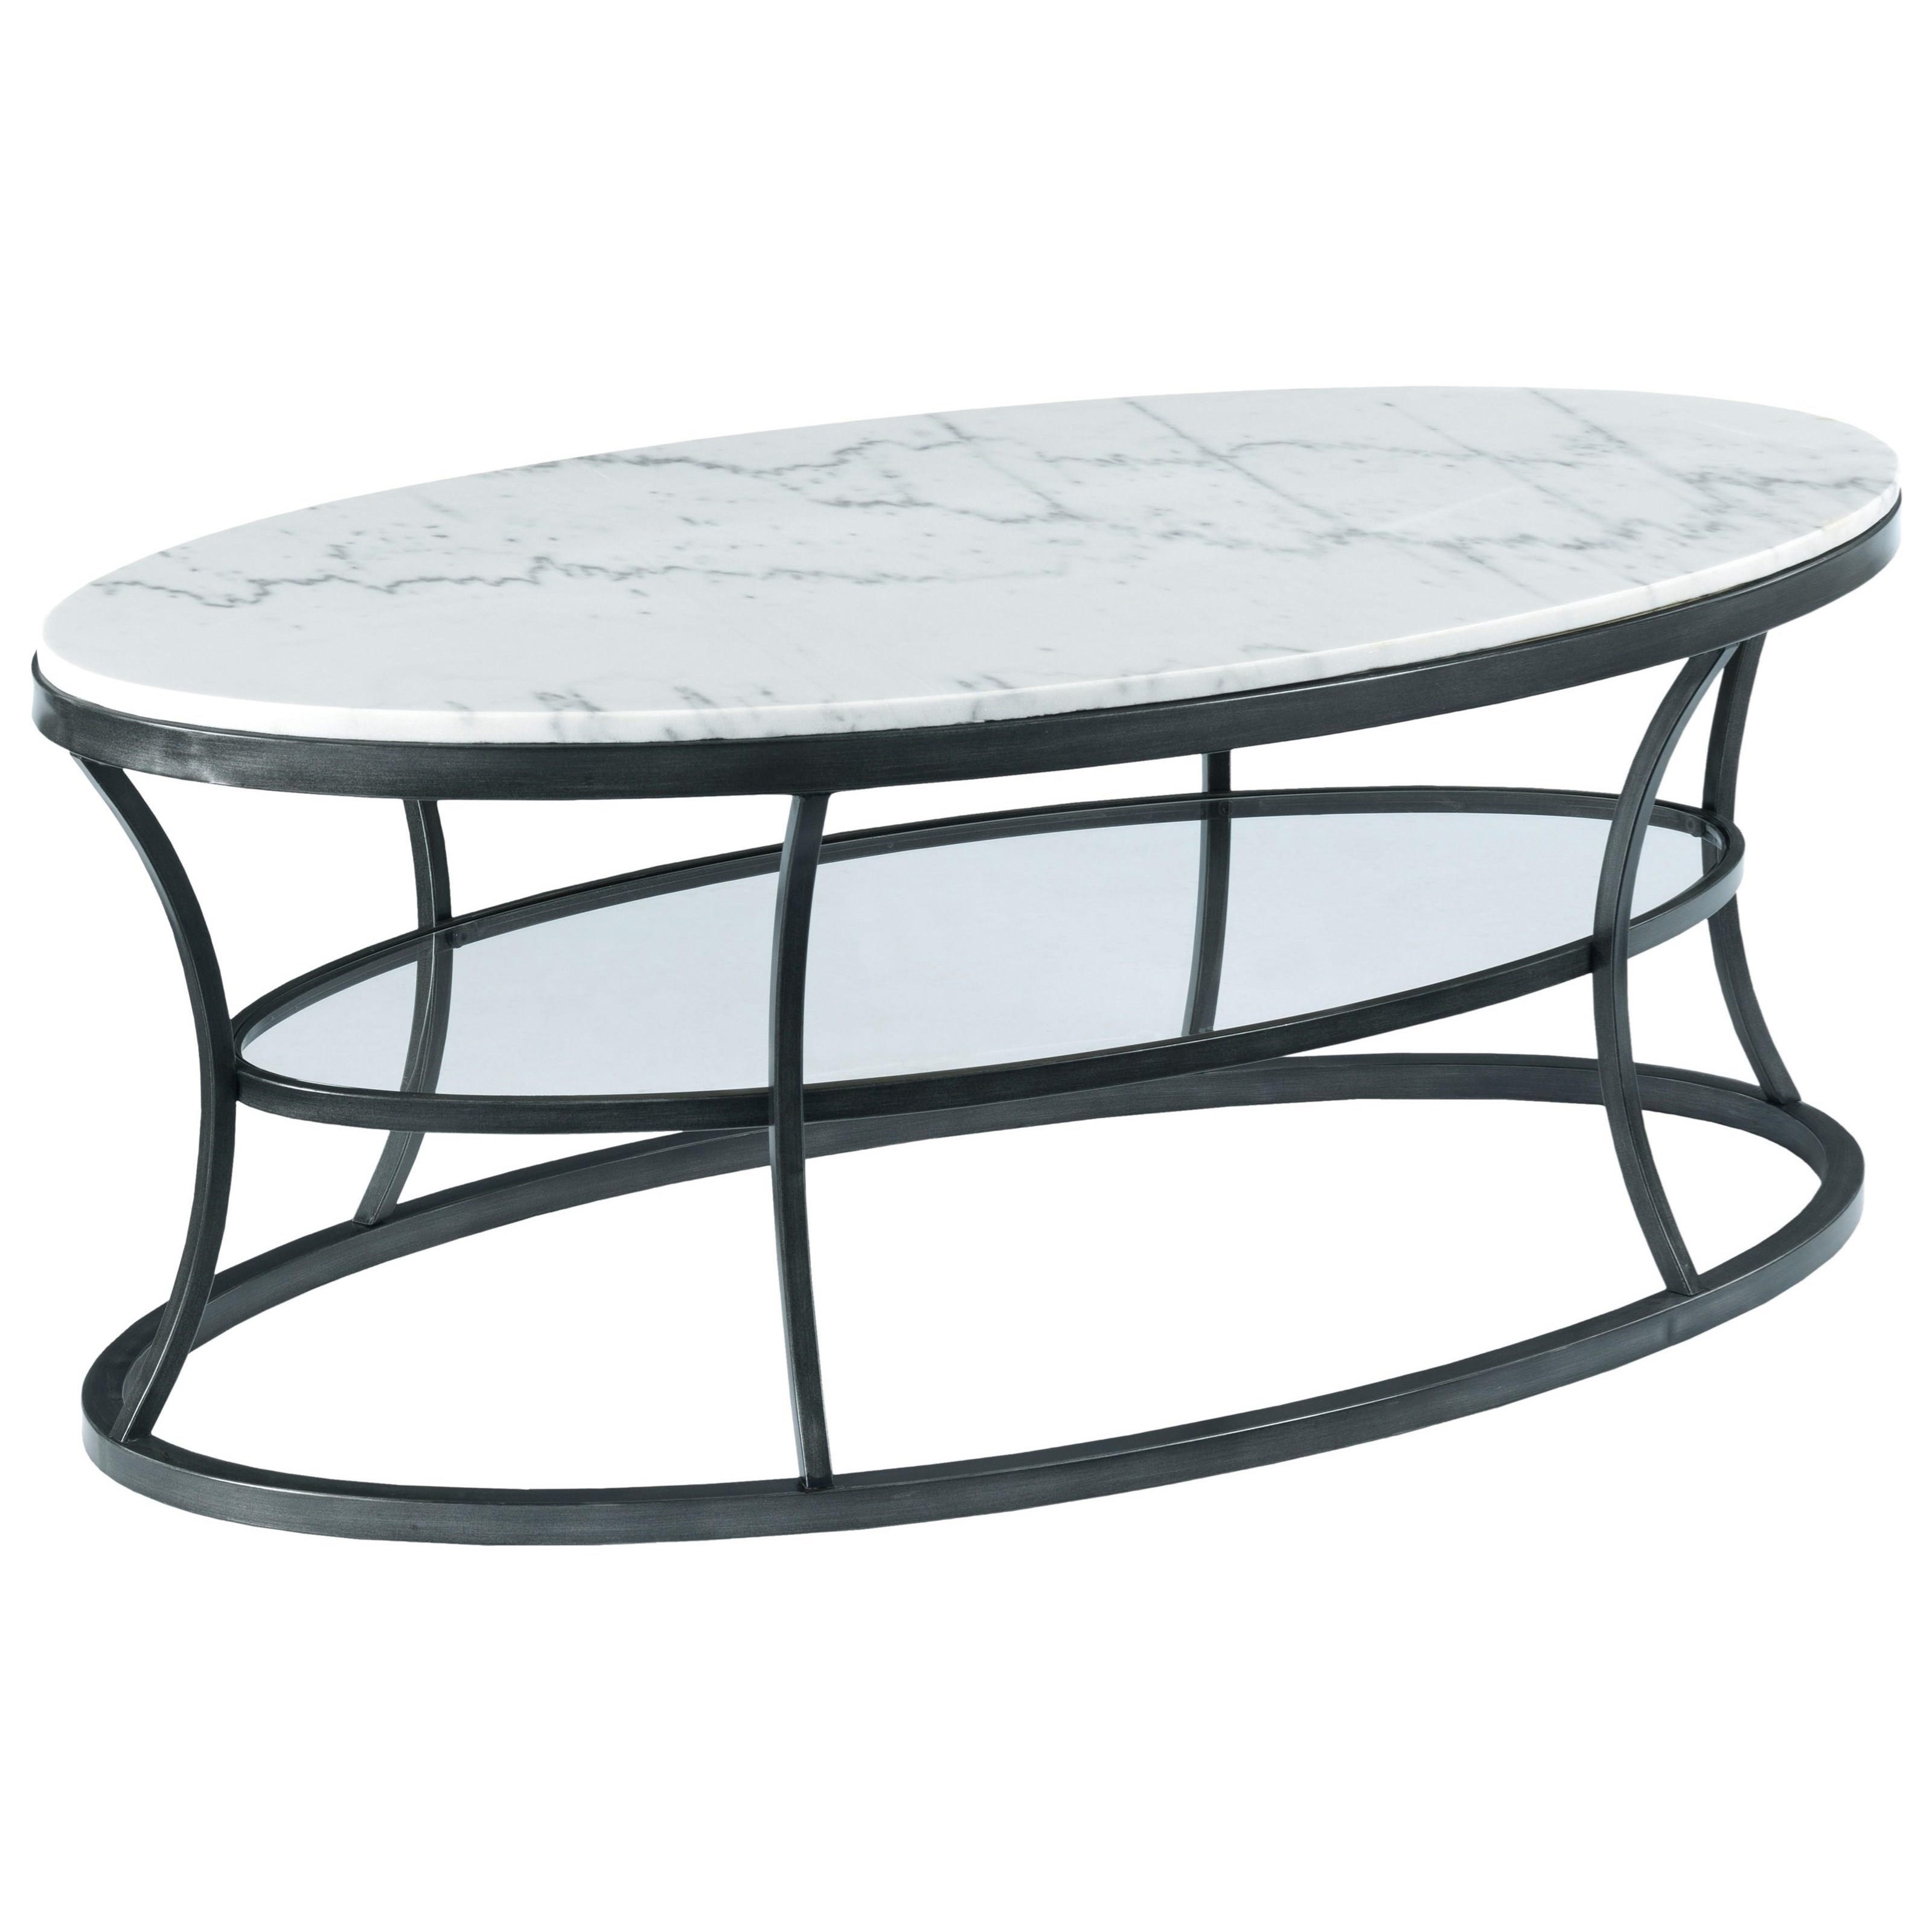 Isley Isley Oval Cocktail Table with Marble Top by Hammary at Morris Home